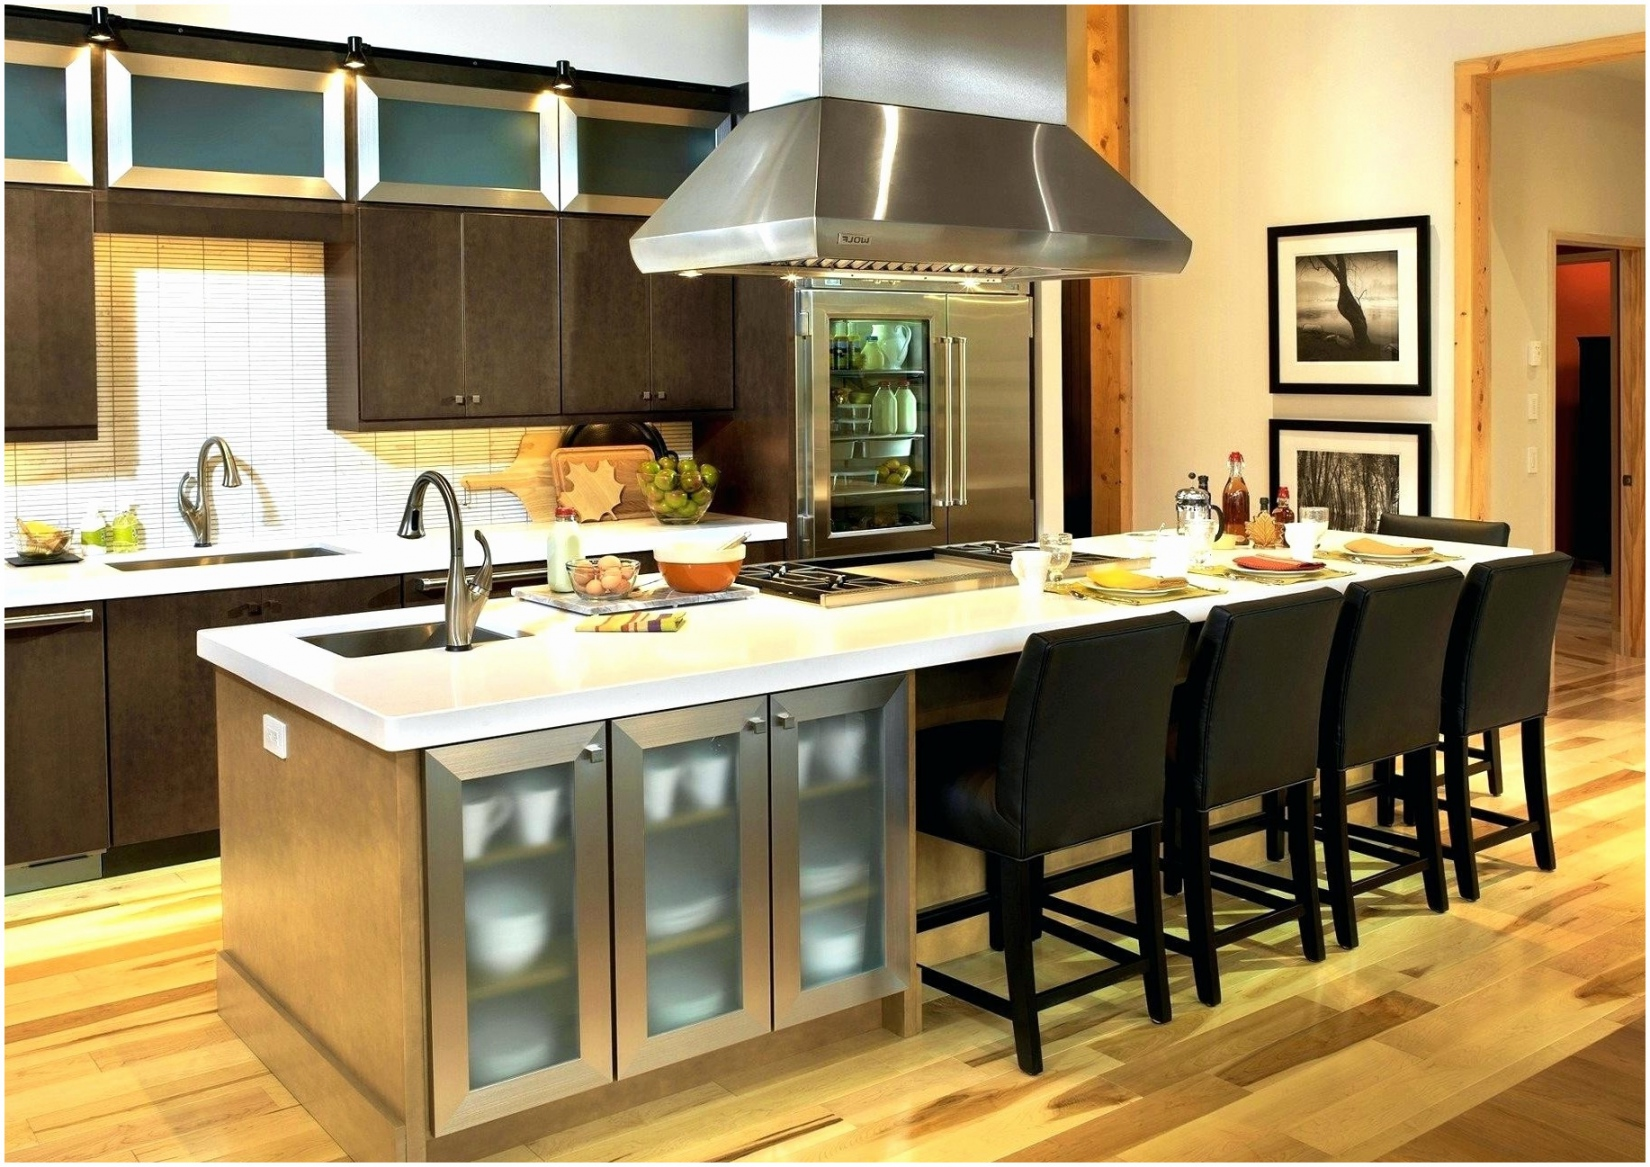 Entrancing Small Kitchen Island Table Of For Charming Designs New Slbssh Sink Dishwasher Acnn Decor